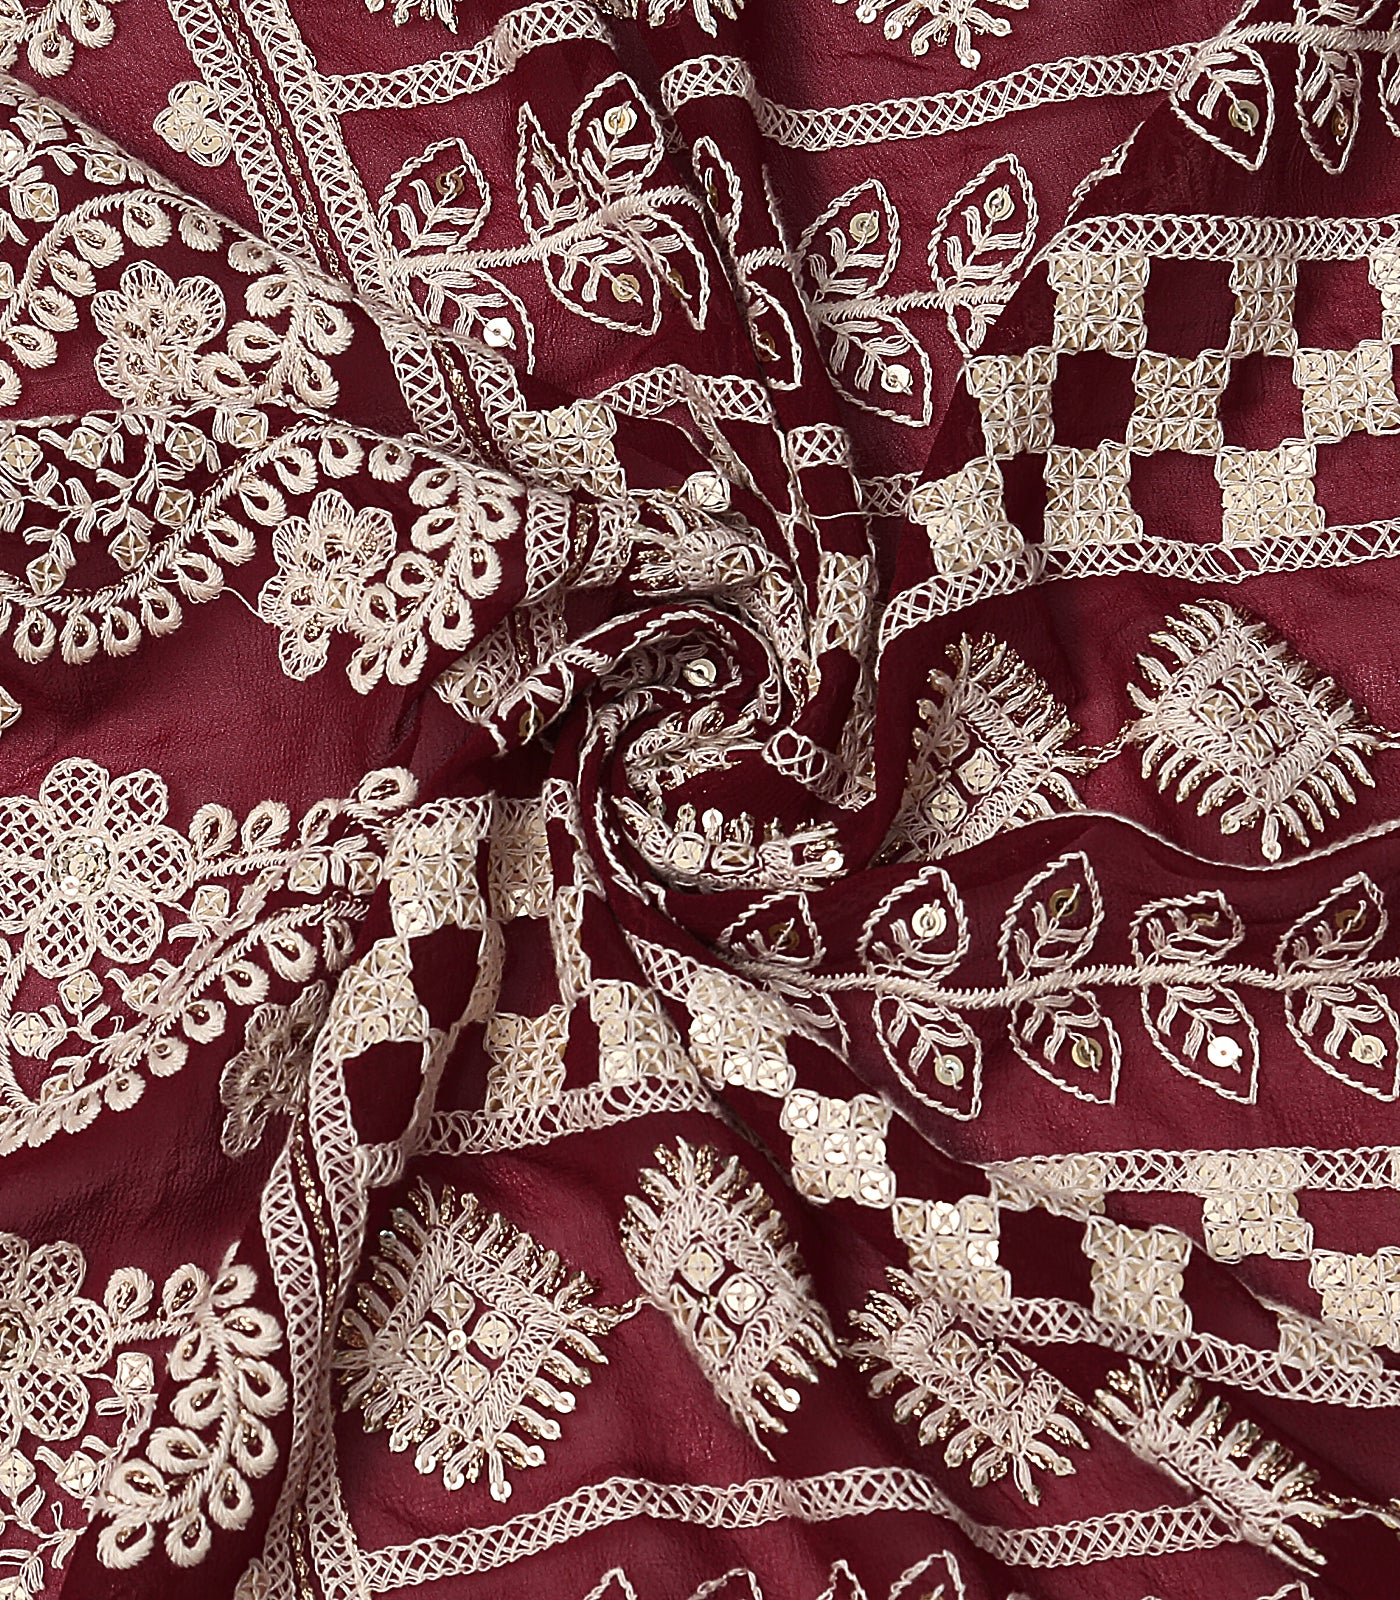 Maroon Lucknowi Georgette Fabric With Sequin & Zari Work